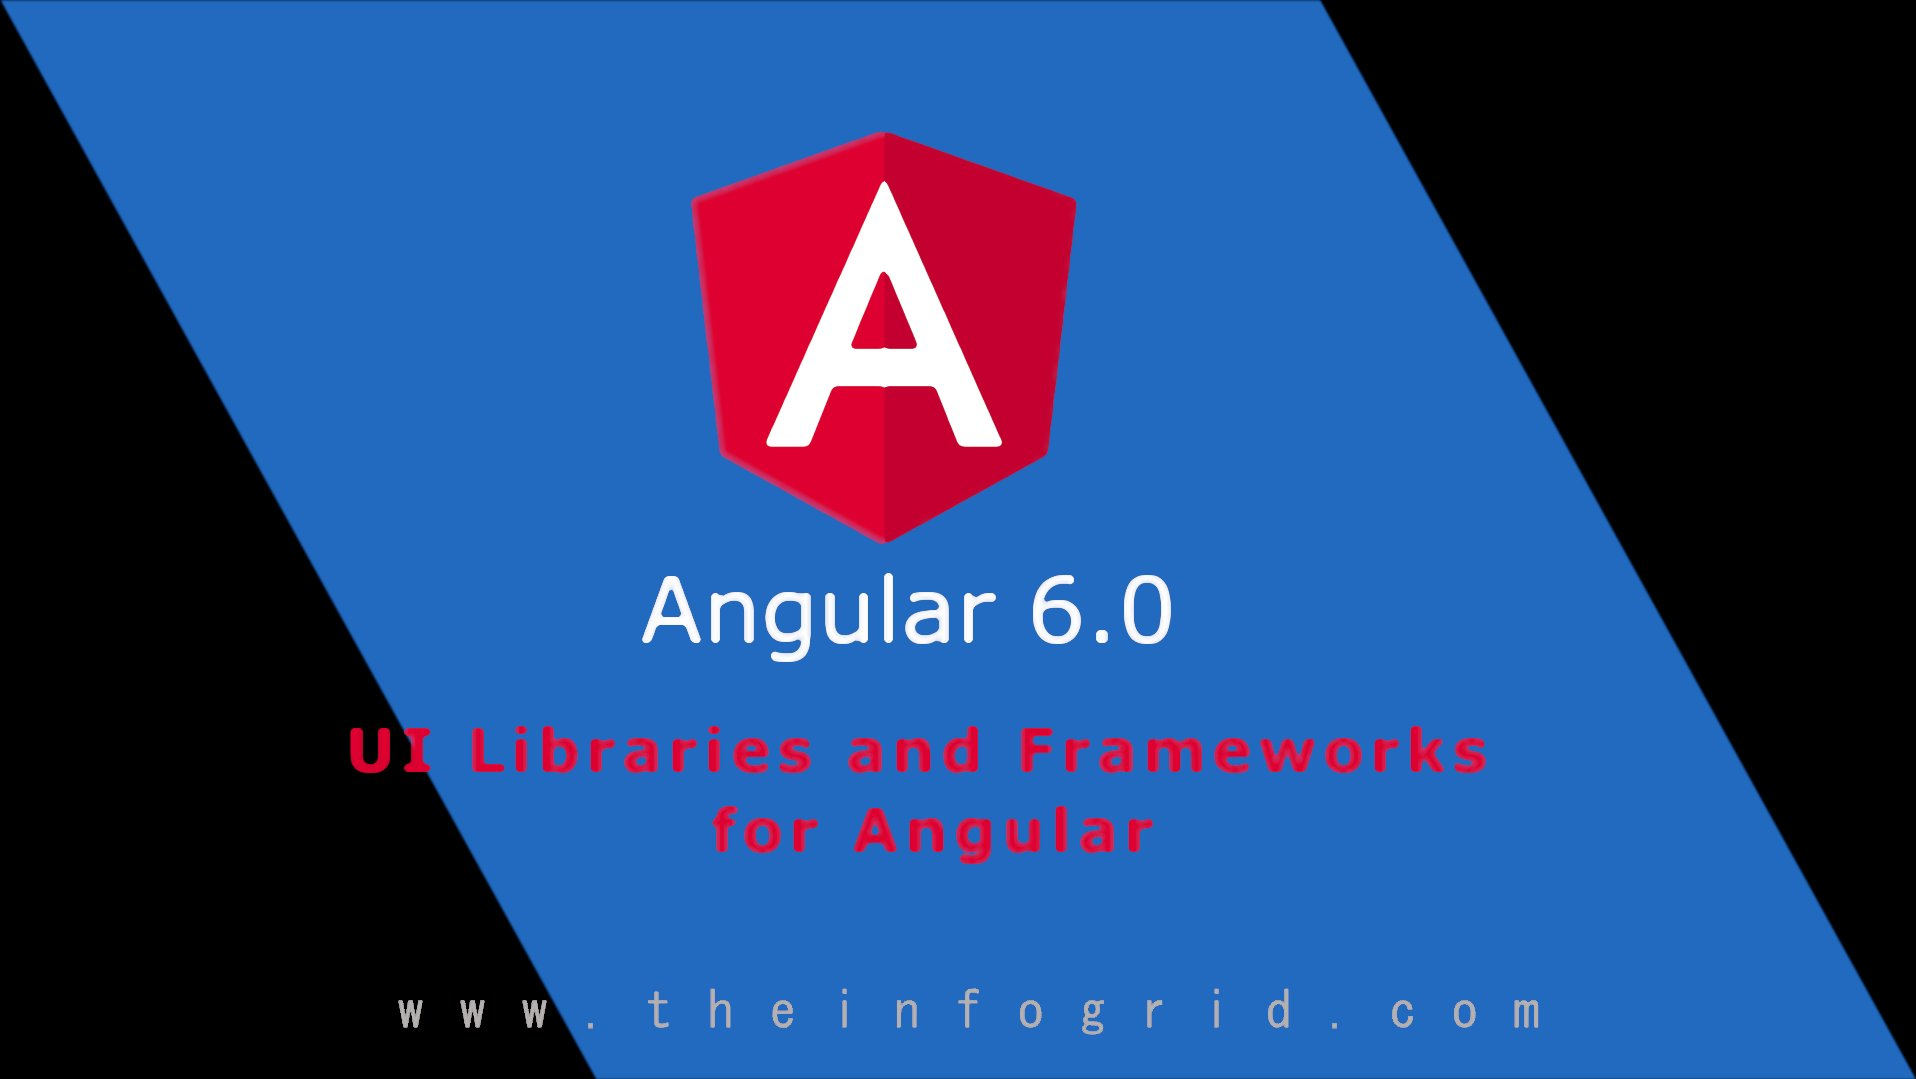 UI Libraries and Frameworks for Angular 6